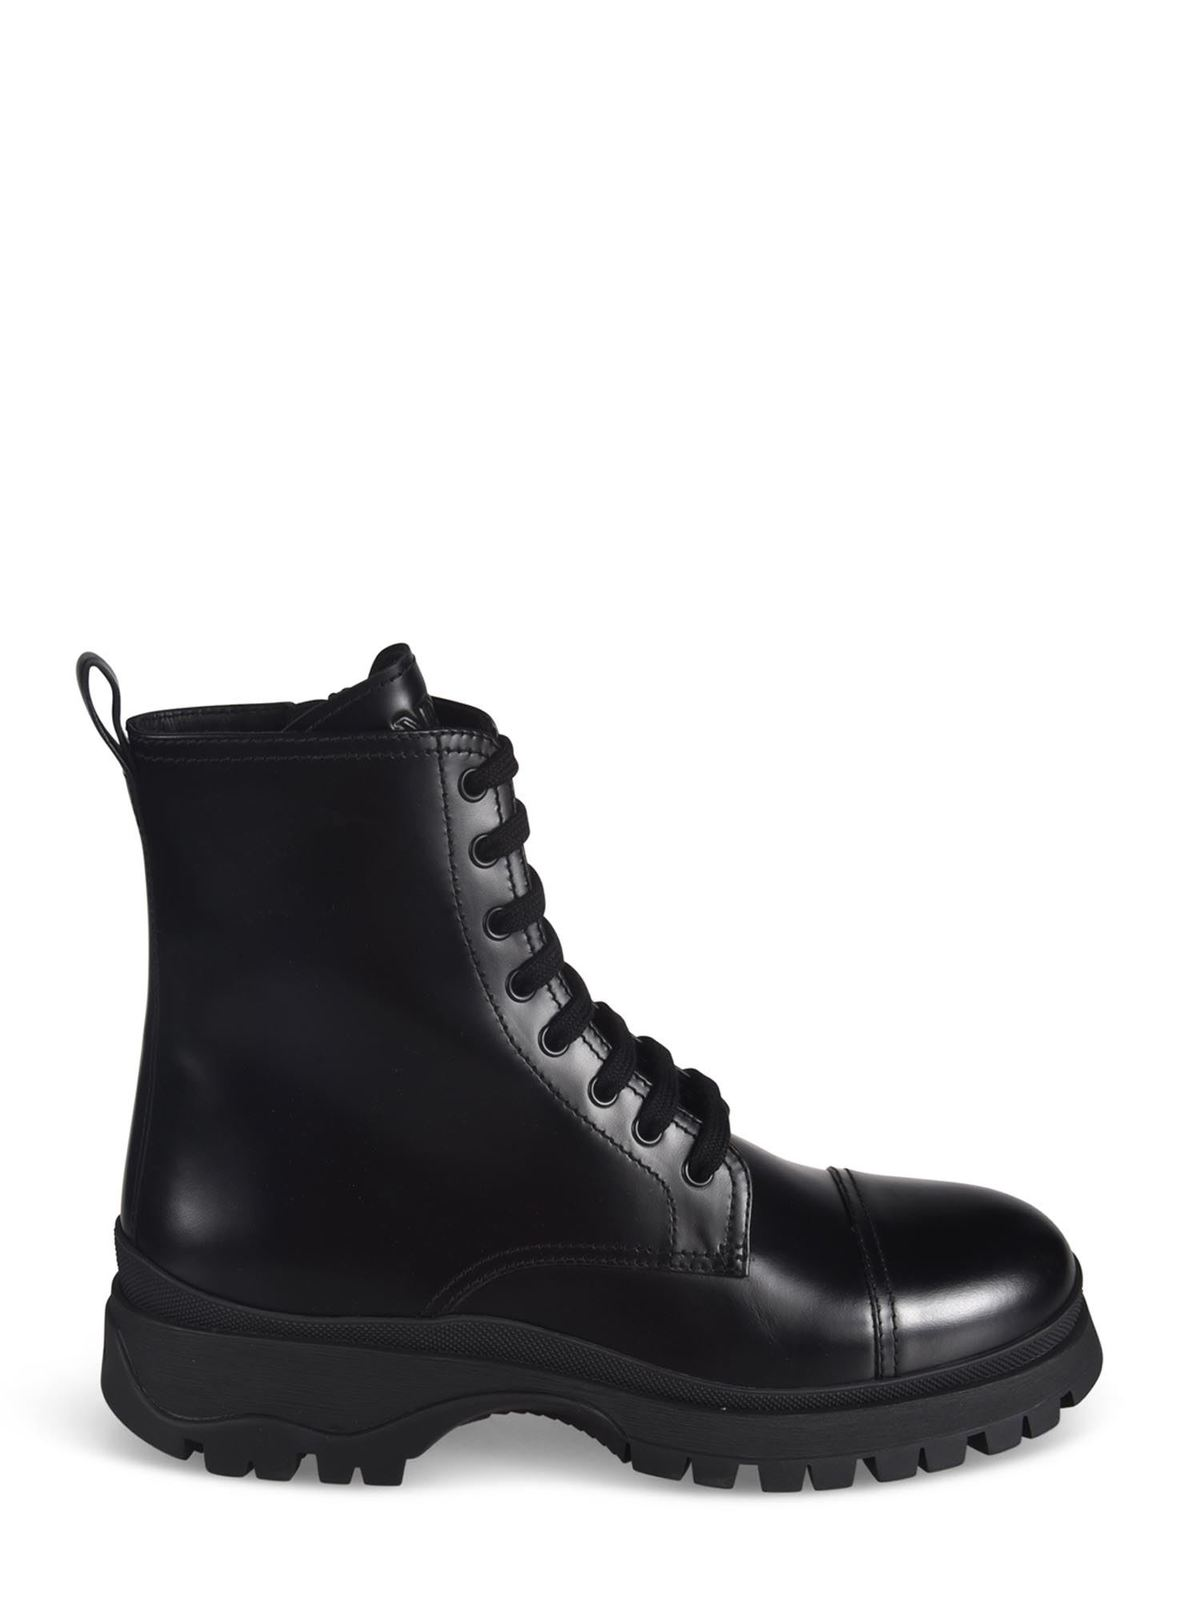 PRADA BRUSHED LEATHER ANKLE BOOTS IN BLACK